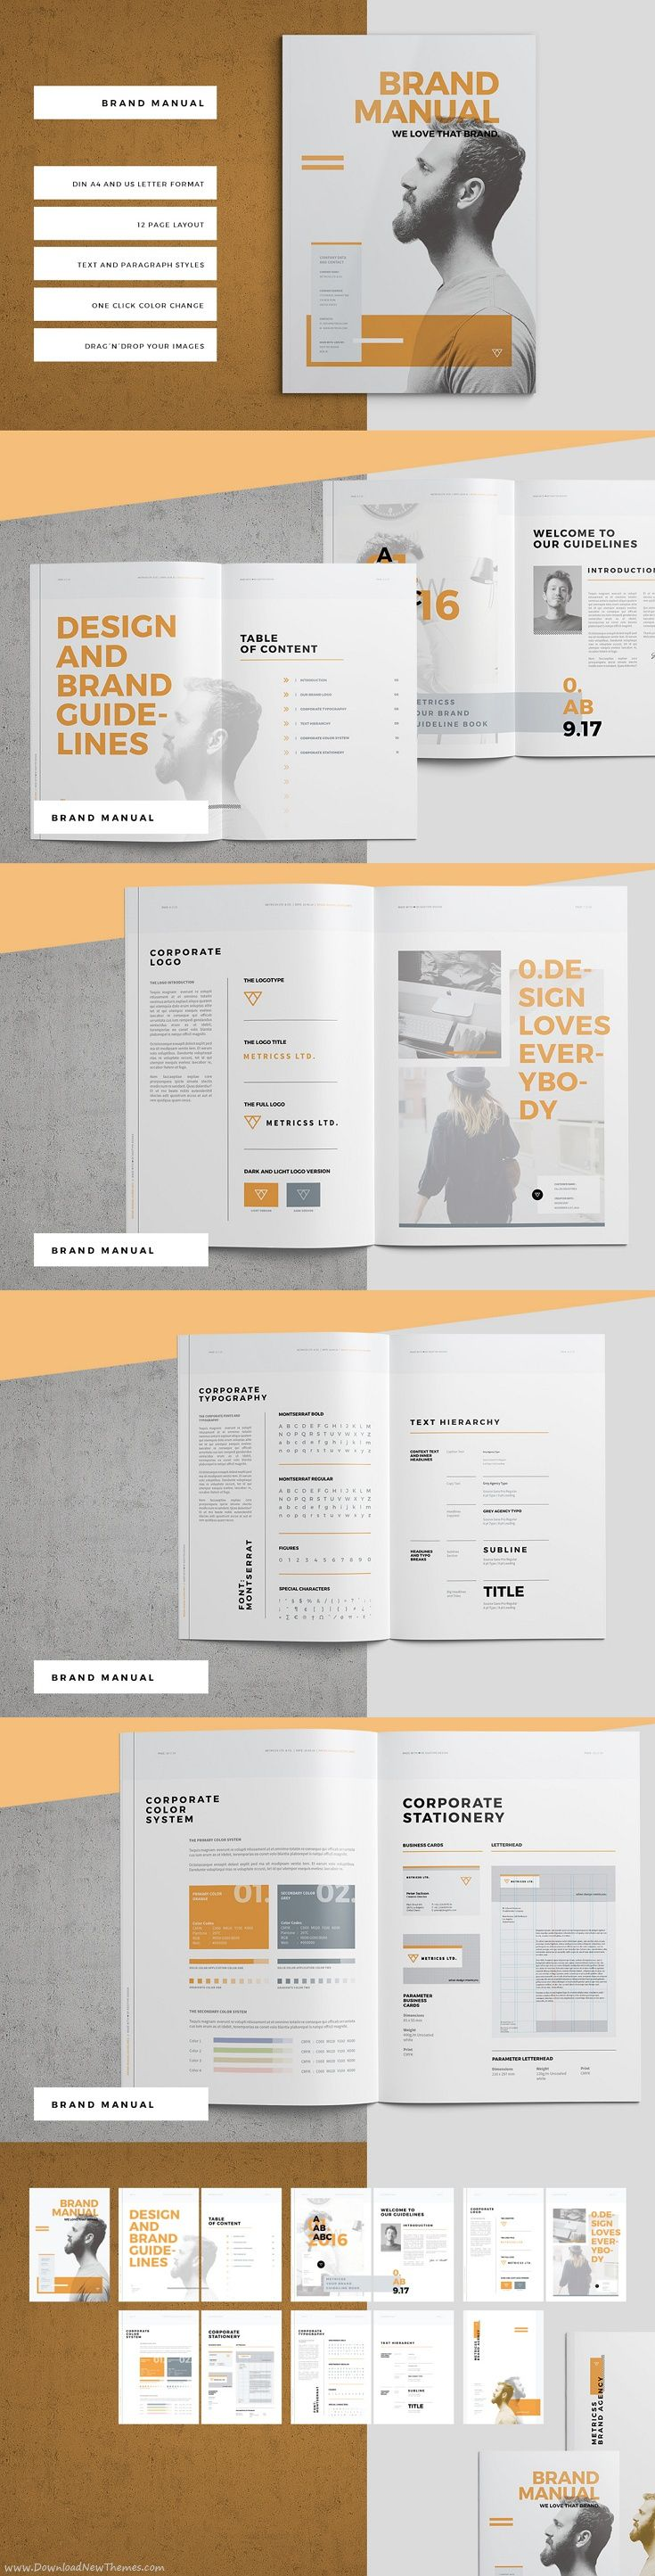 Stunning Brand Manual and Corporate Design Guideline Template #Brochures #Indesign #Graphics download now➩ https://creativemarket.com/Egotype/904862-Brand-Manual?u=Datasata